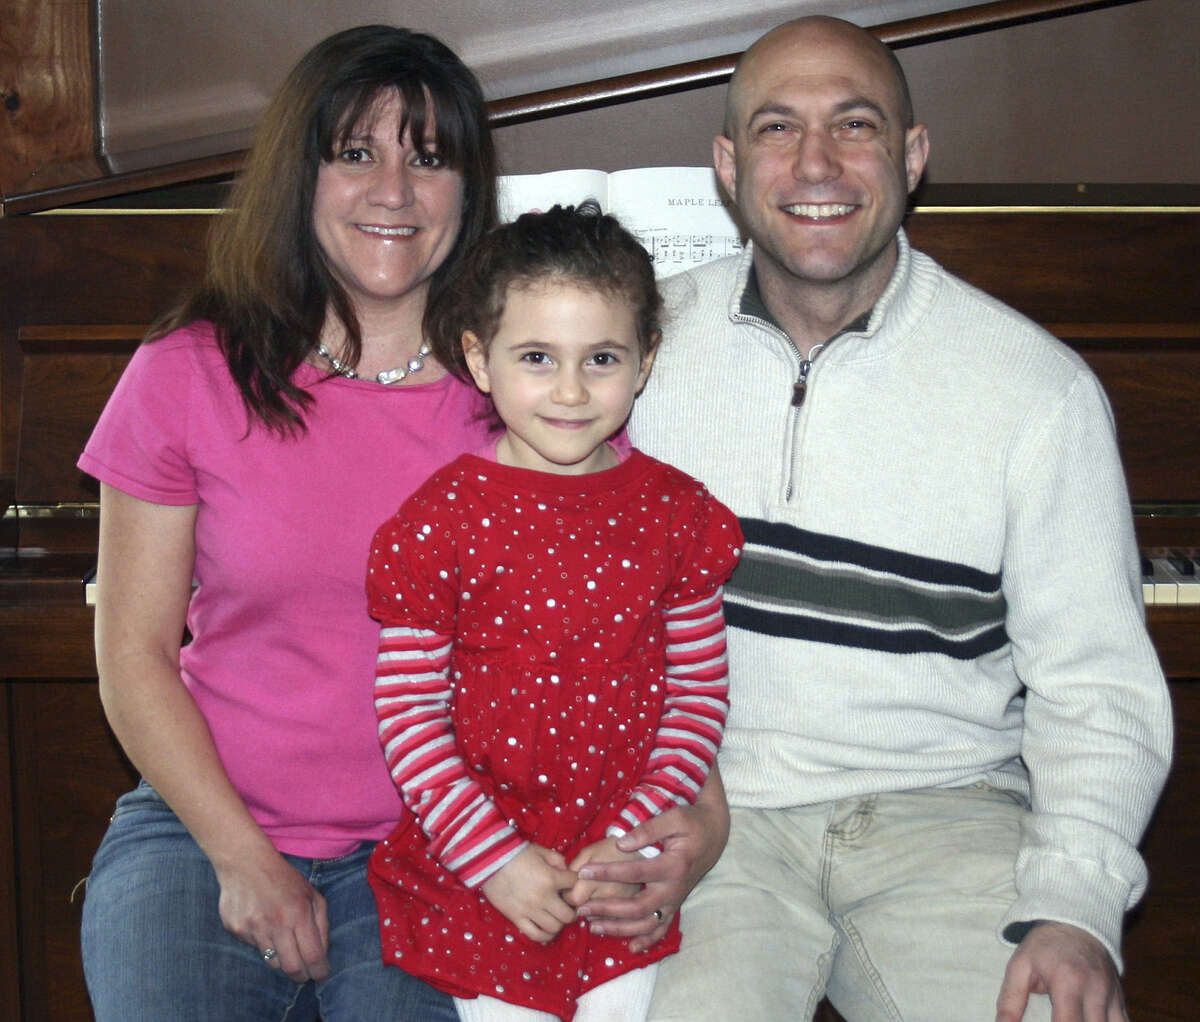 Avielle Richman, shown with parents Jennifer Hensel and Jeremy Richman, was among the students killed at Sandy Hook. A service for the victims was held on Capitol Hill.